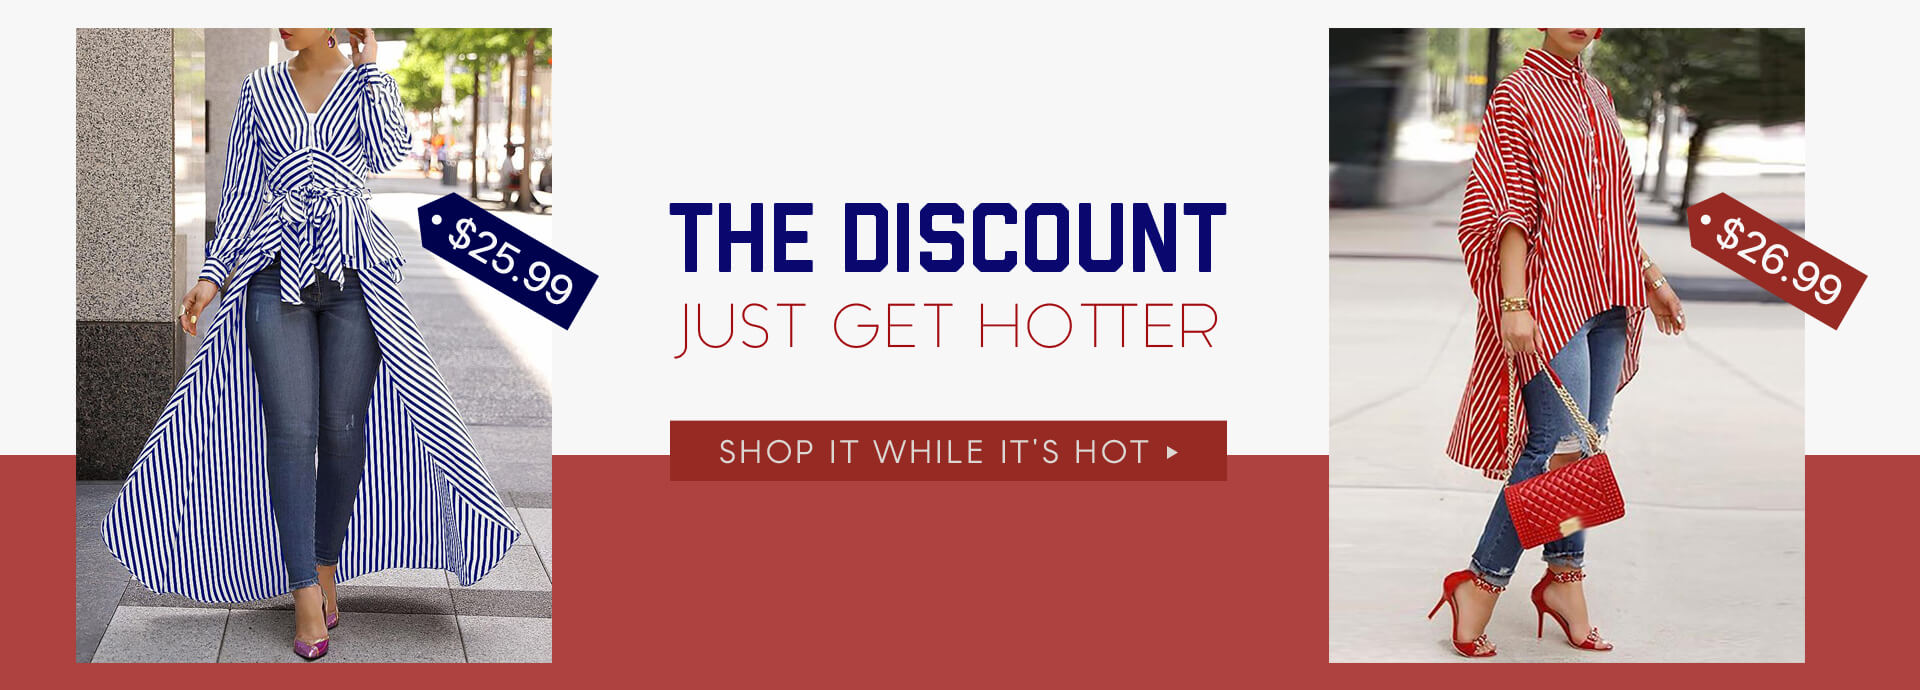 Chic Me Womens Fashion Online Shopping - Free invoice women's clothing online stores